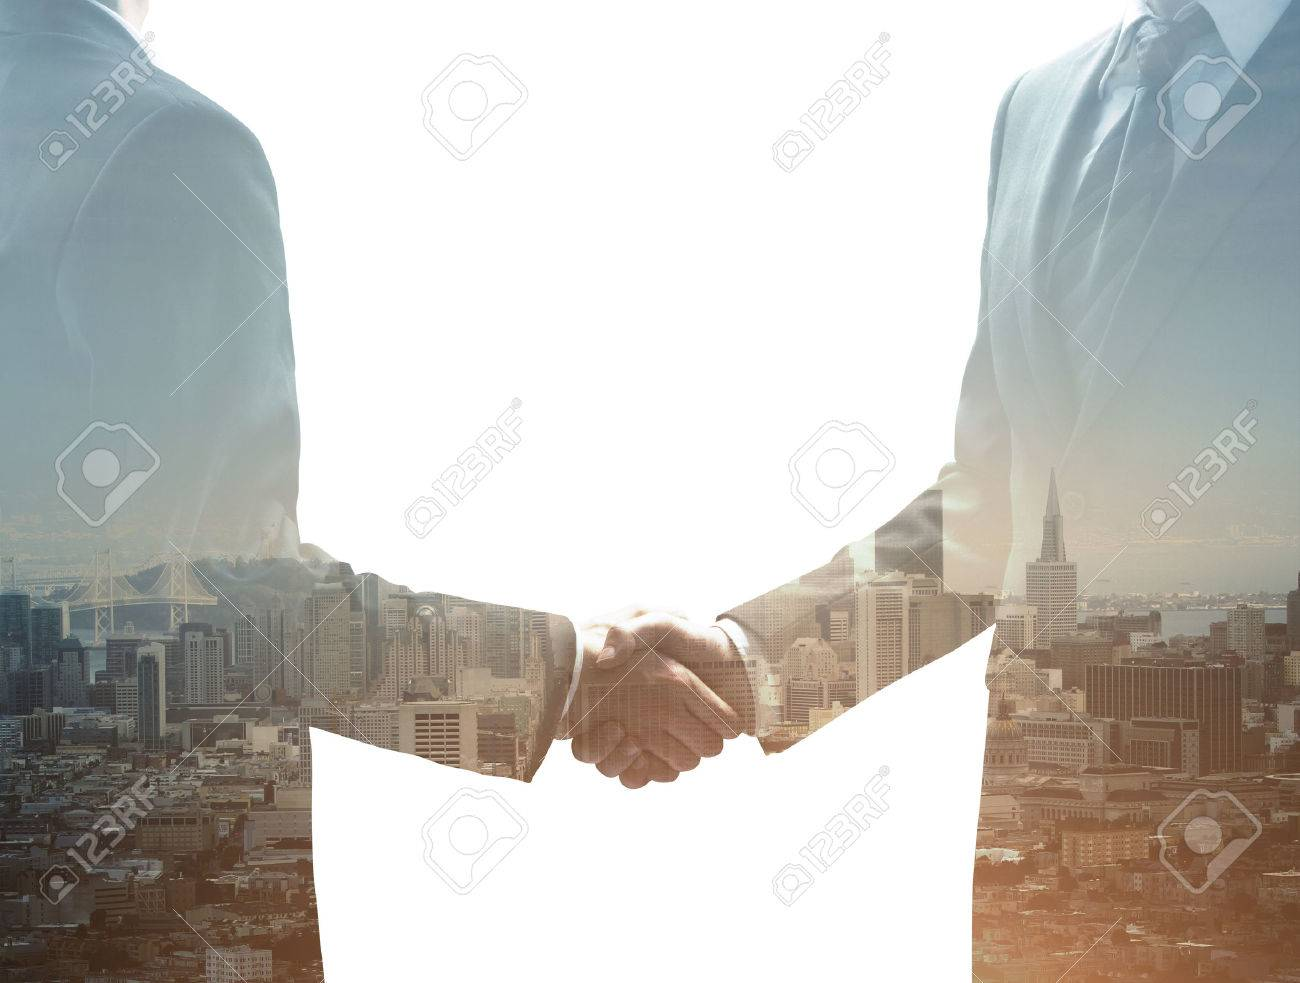 two businessmen shaking hands on city background Stock Photo - 42070794